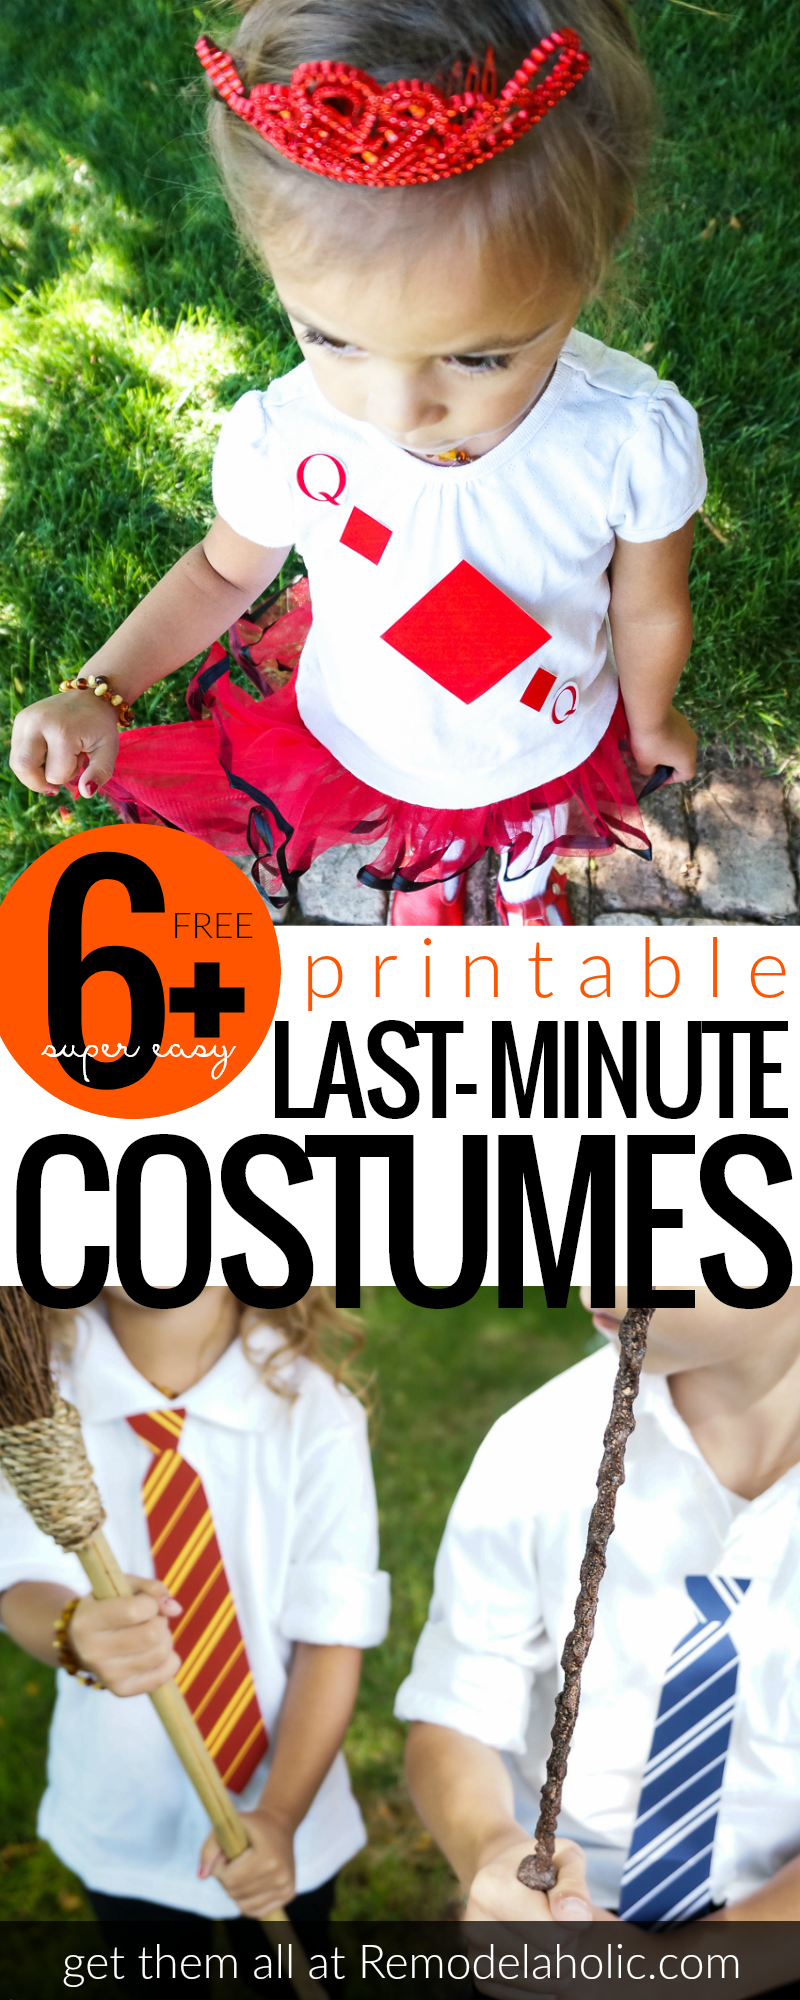 Free Printable Last Minute Costume Ideas @Remodelaholic